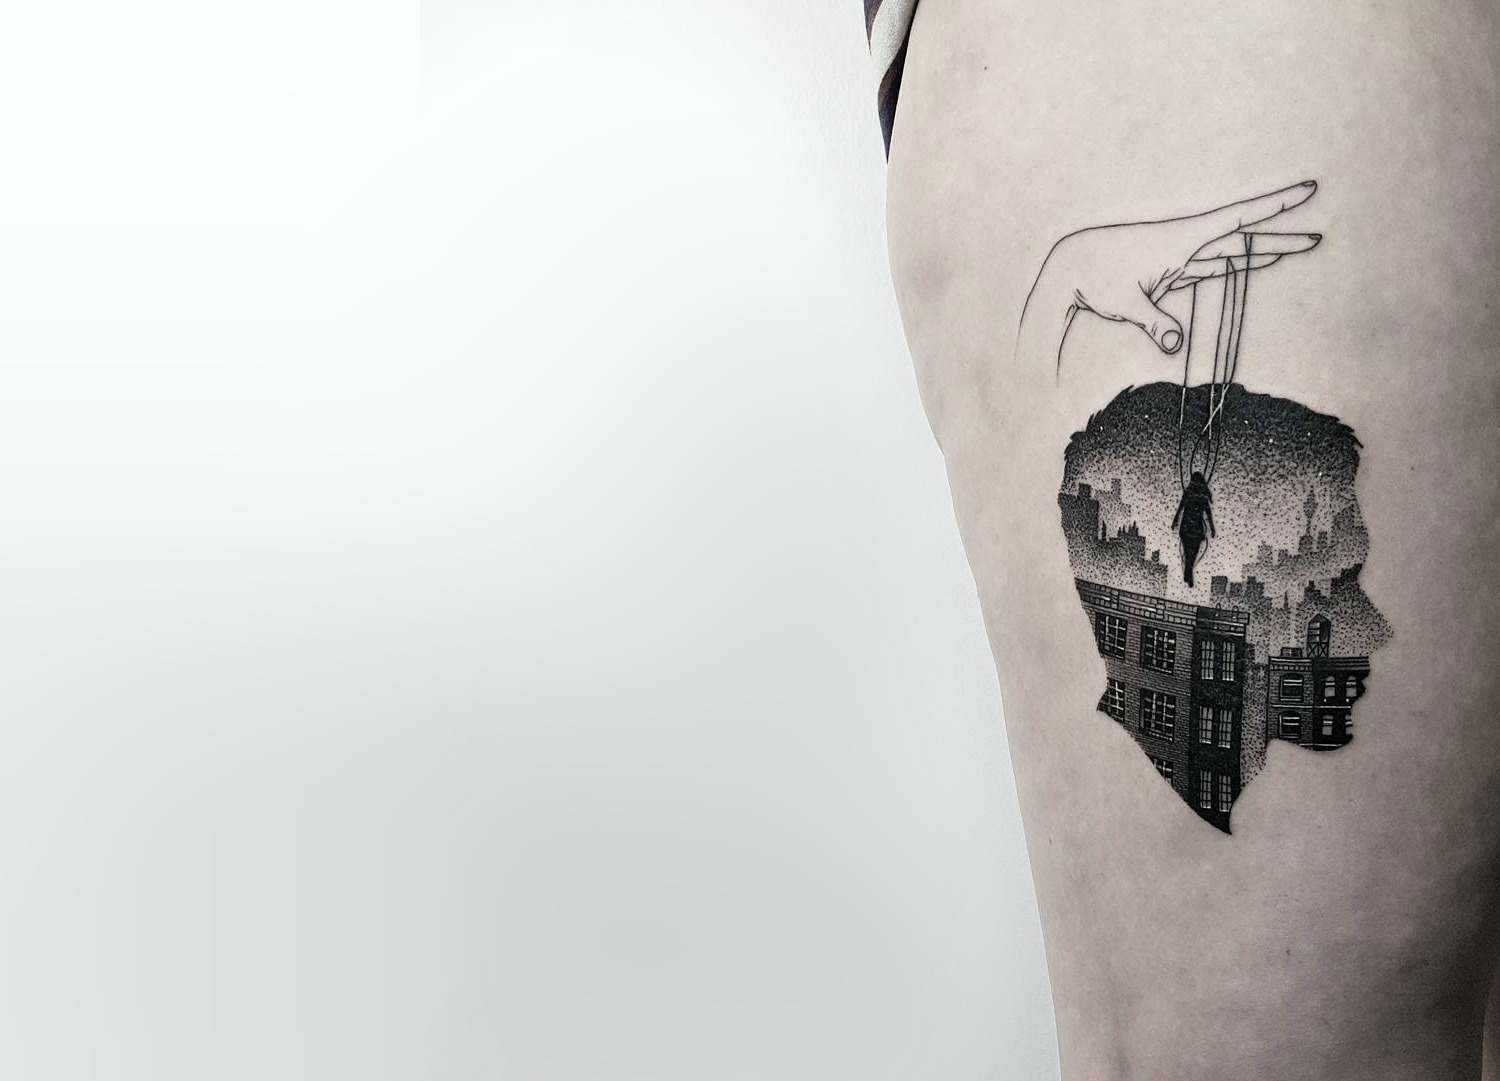 Double exposure blackwork silhouette tattoo by Matteo Nangeroni